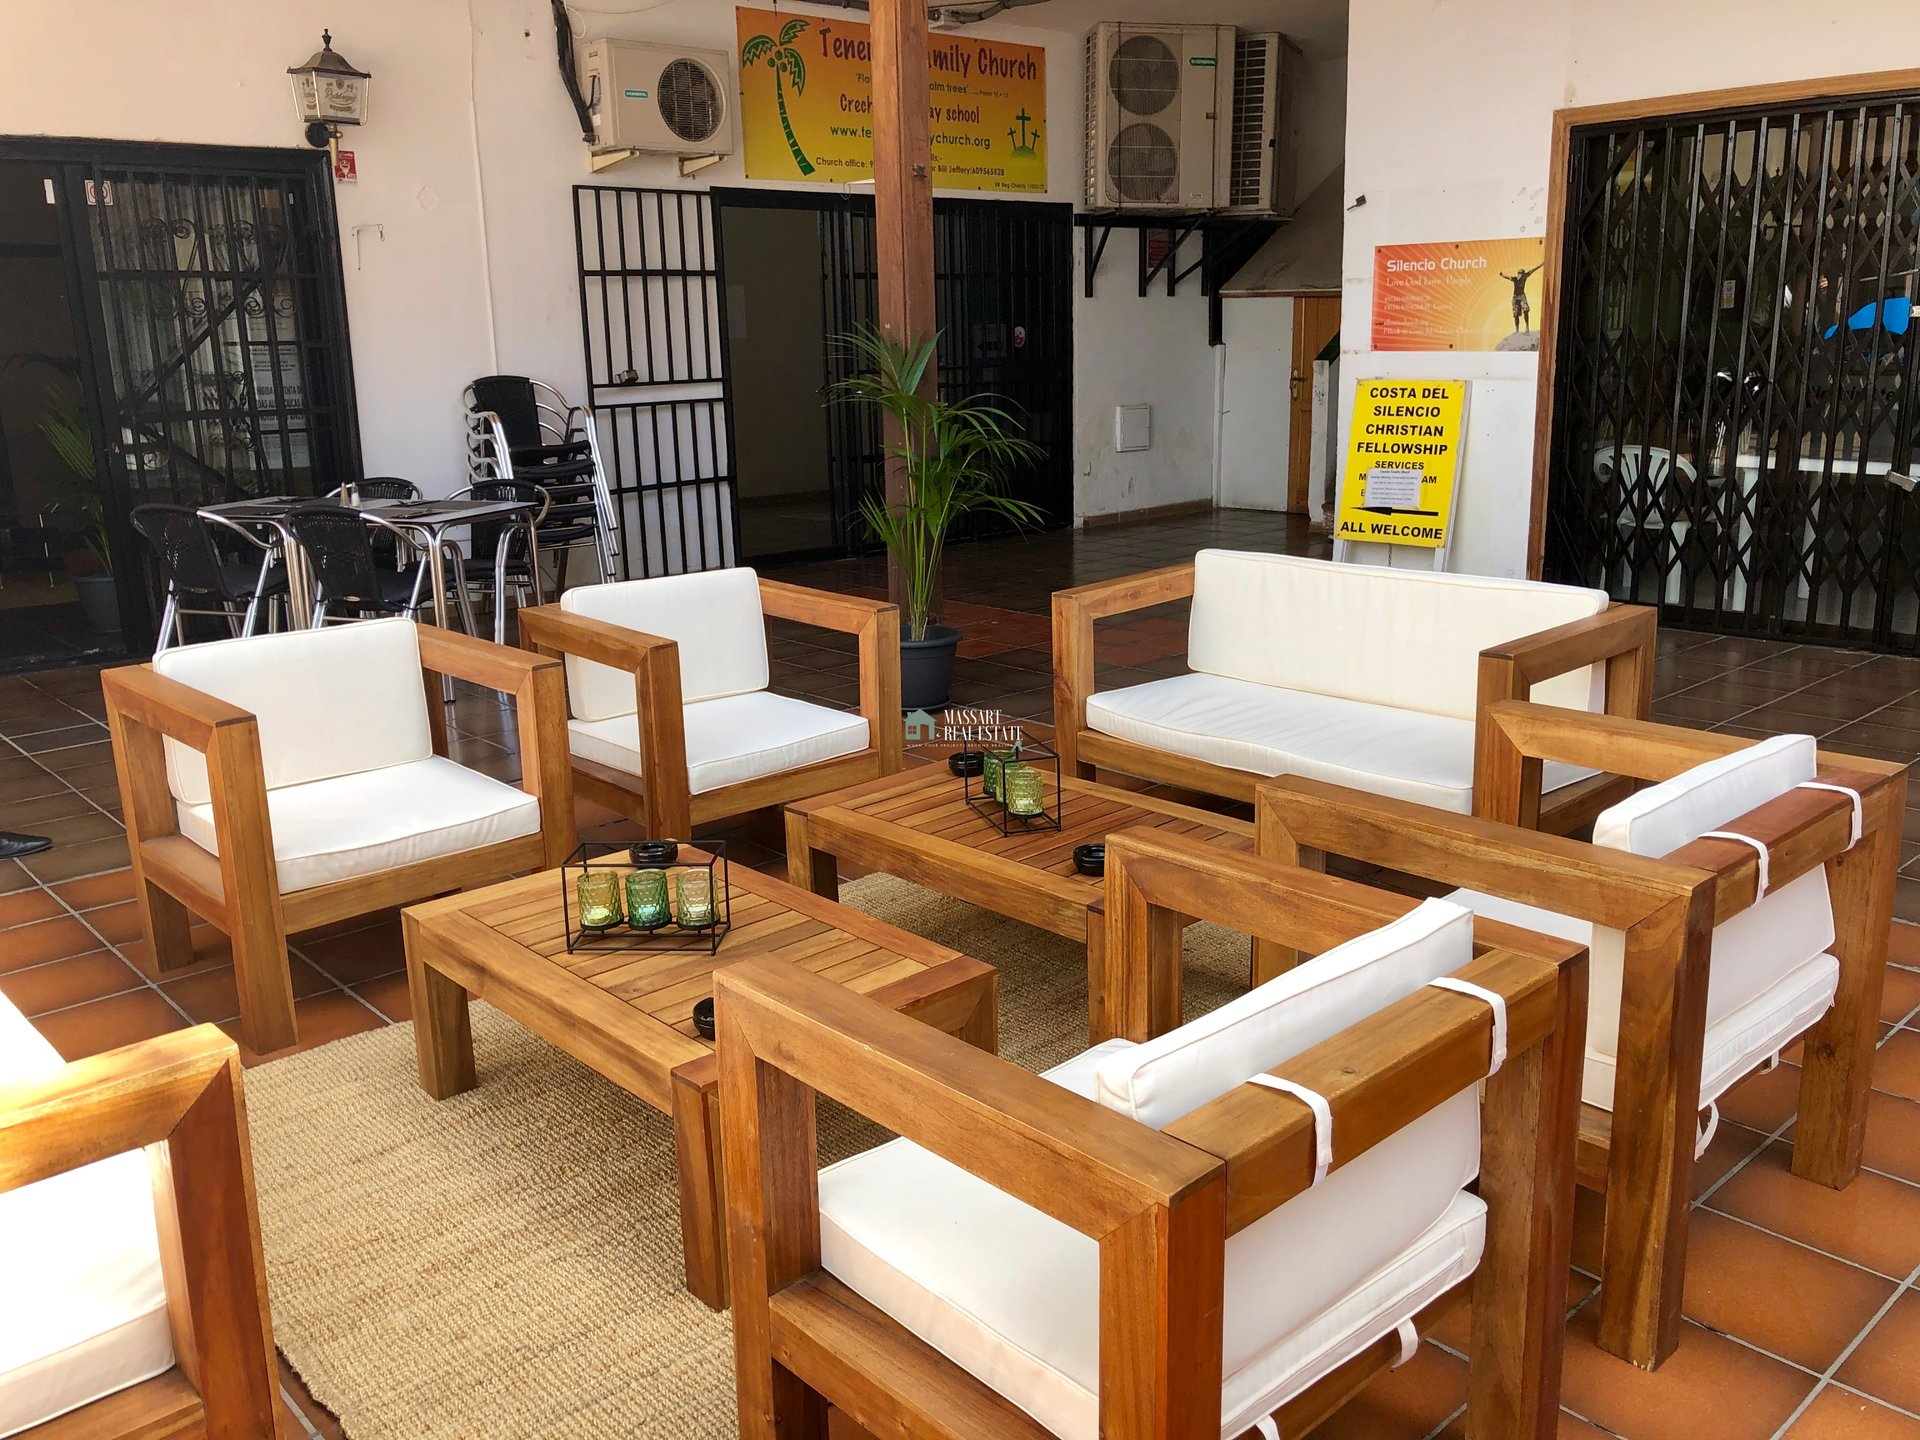 If you had always dreamed of having your own restaurant in the south of Tenerife, here you have the ideal opportunity to make your dream come true!